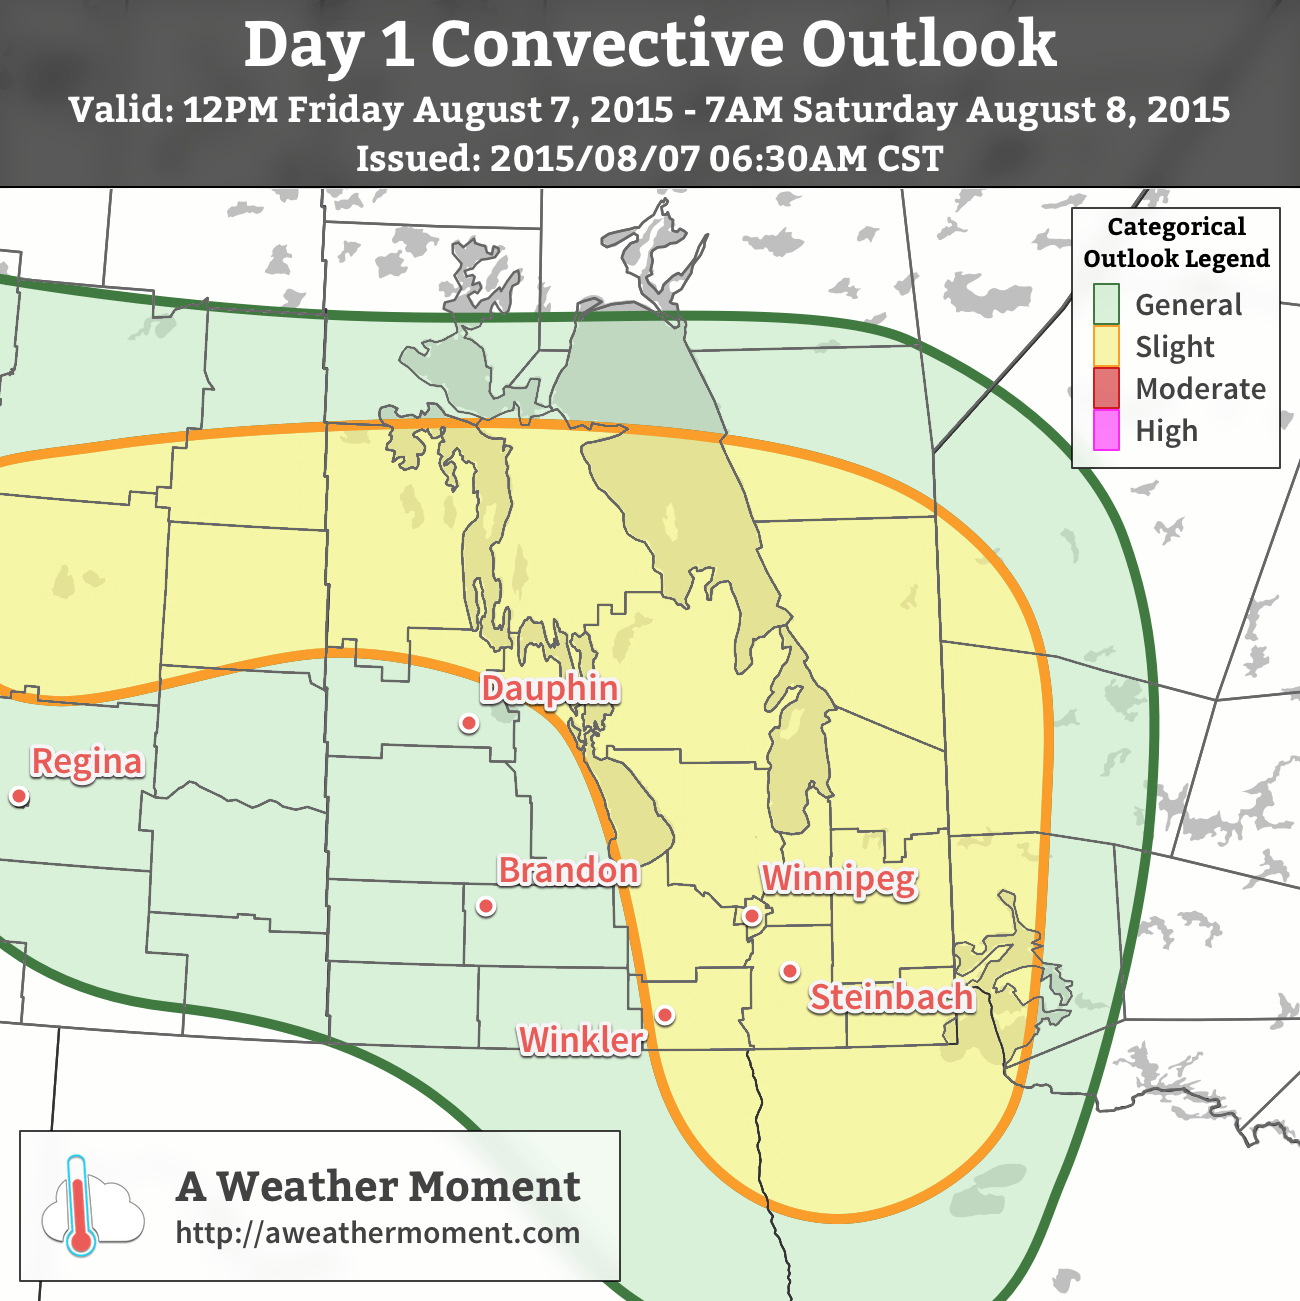 AWM Convective Outlook valid 12PM Friday August 7, 2015 to 7AM Saturday August 8, 2015